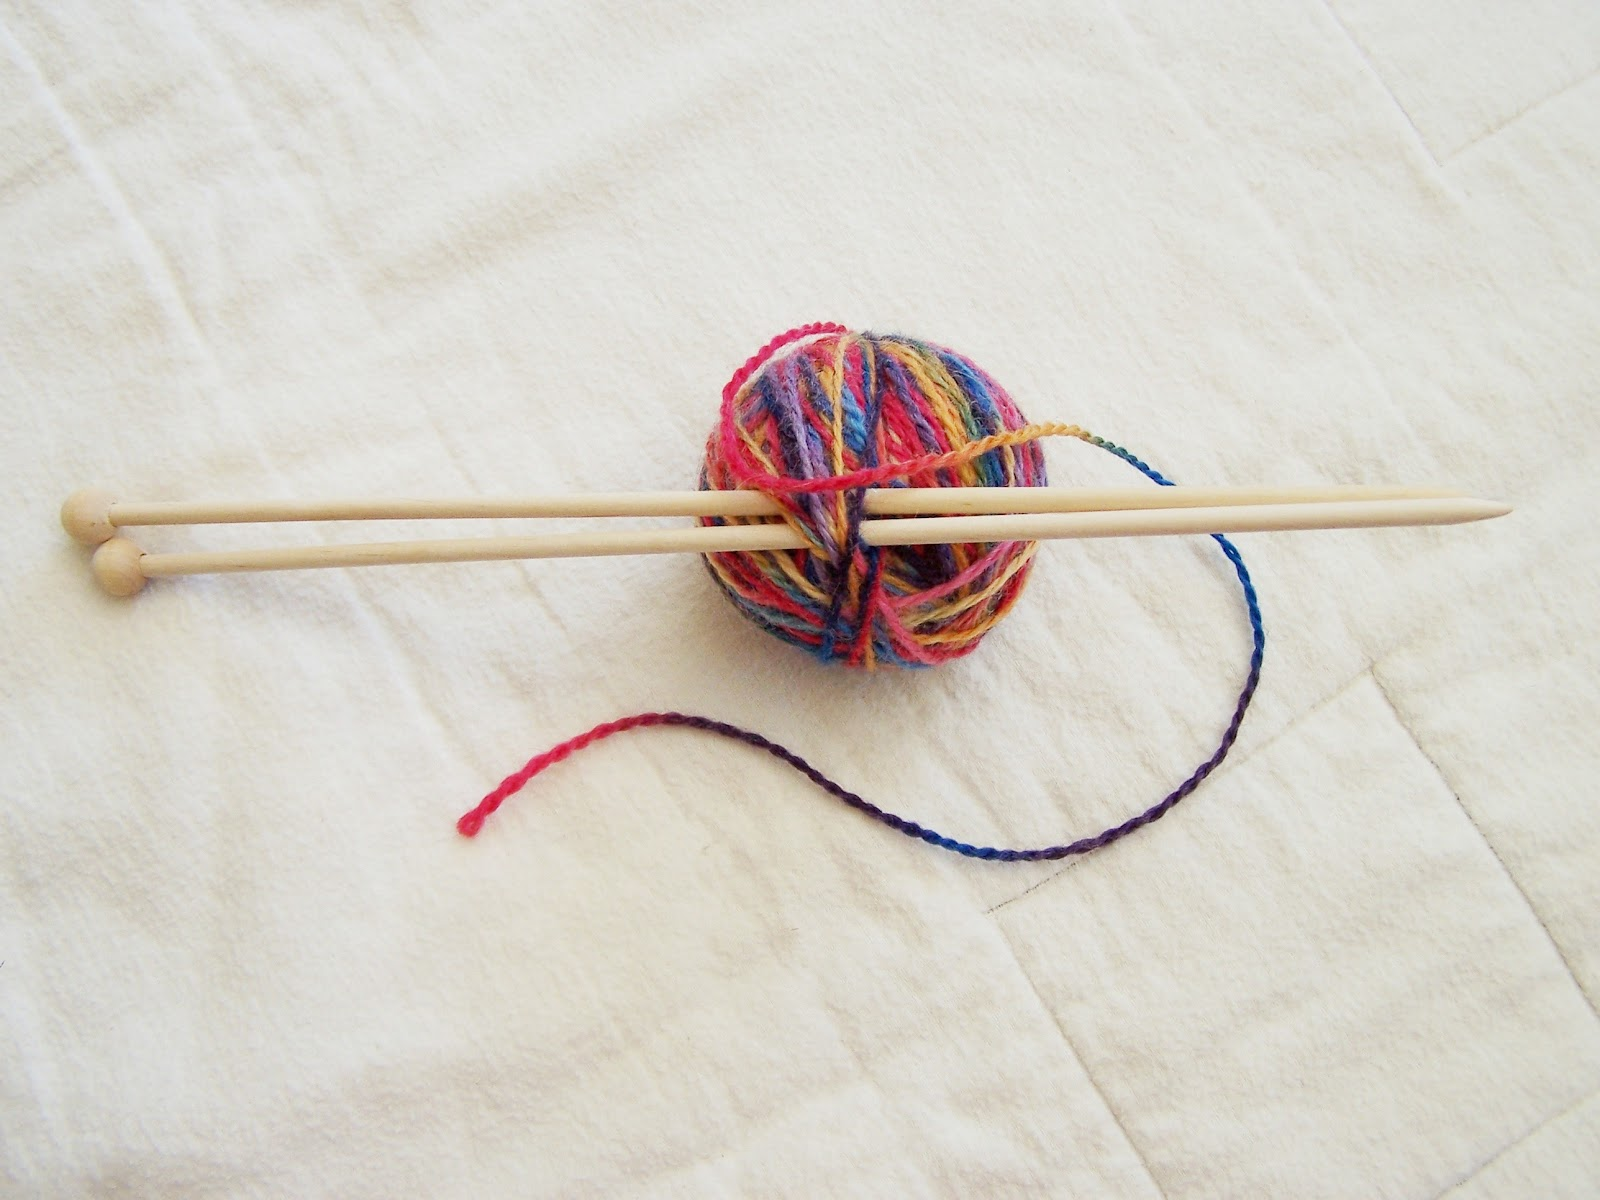 ... first step she taught them was how to make their own knitting needles